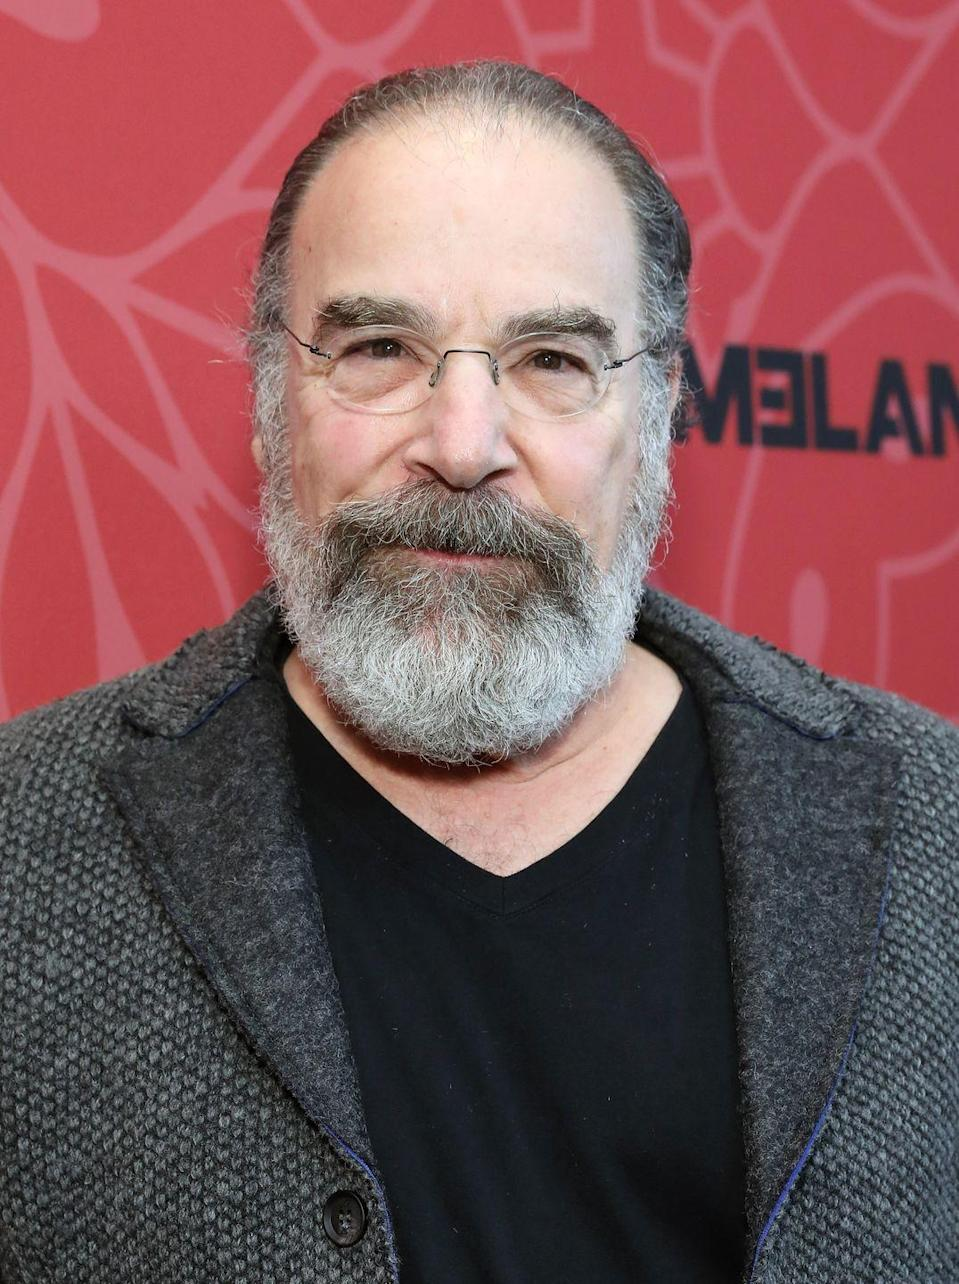 """<p>Mandy Patinkin starred in the CBS series, but abruptly left the show in 2007 after the second season, which was a shock to viewers. For Patinkin, it was the right decision. He told <a href=""""https://nymag.com/arts/tv/fall-2012/mandy-patinkin-2012-9/"""" rel=""""nofollow noopener"""" target=""""_blank"""" data-ylk=""""slk:New York Magazine"""" class=""""link rapid-noclick-resp""""><em>New York Magazine</em></a>, """"The biggest public mistake I ever made was that I chose to do <em>Criminal Minds</em> in the first place. I thought it was something very different. I never thought they were going to kill and rape all these women every night, every day, week after week, year after year. It was very destructive to my soul and my personality. After that, I didn't think I would get to work in television again.""""</p>"""